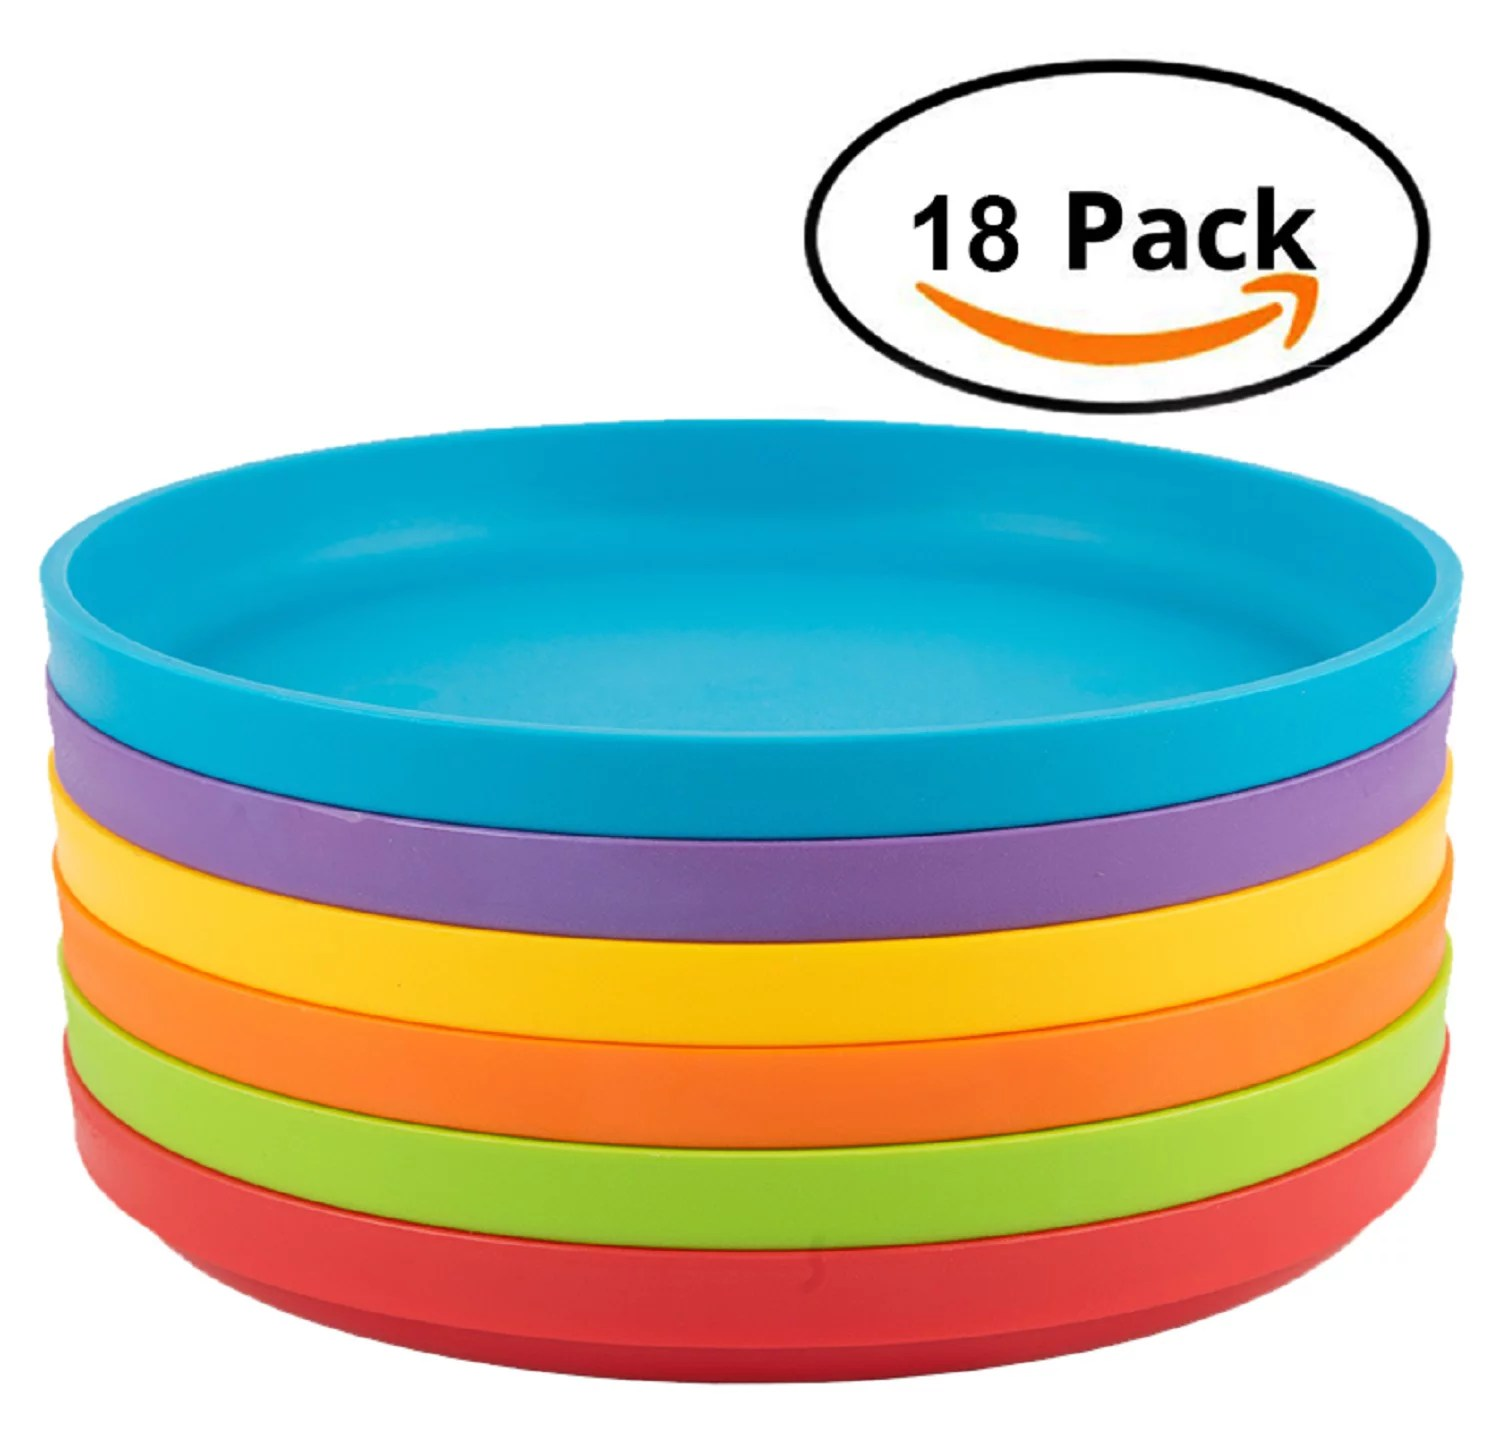 plastic plates for kids 18 piece round plates multicolor microwave safe reusable bpa free